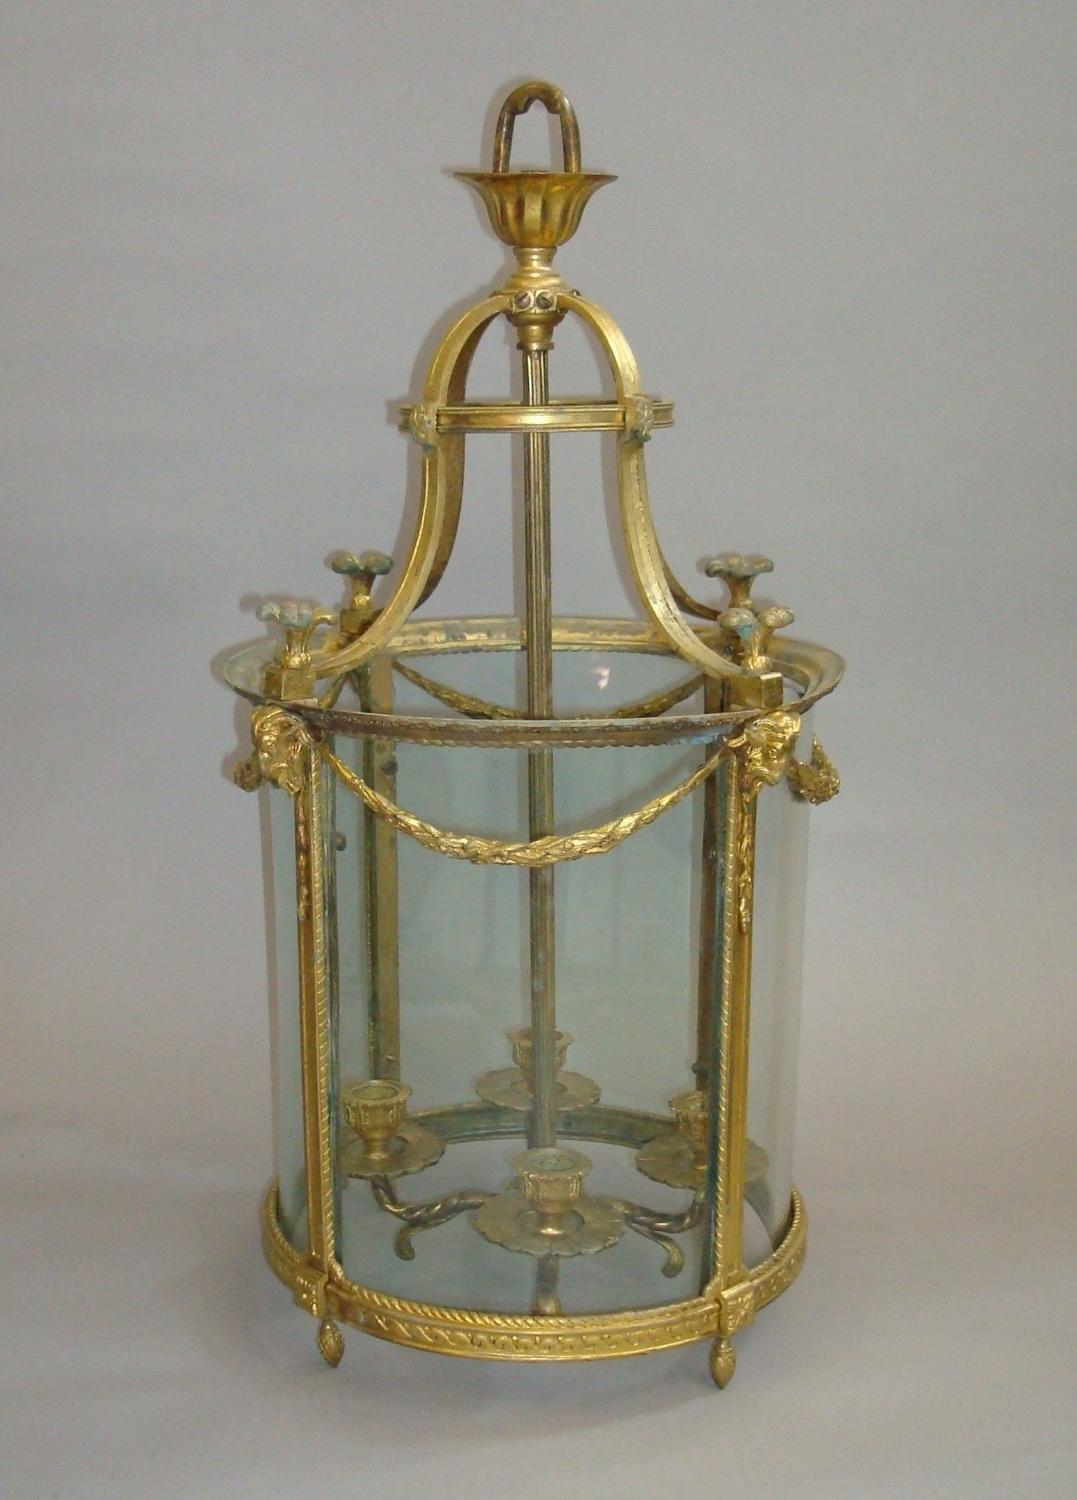 19th century gilt brass hall lantern